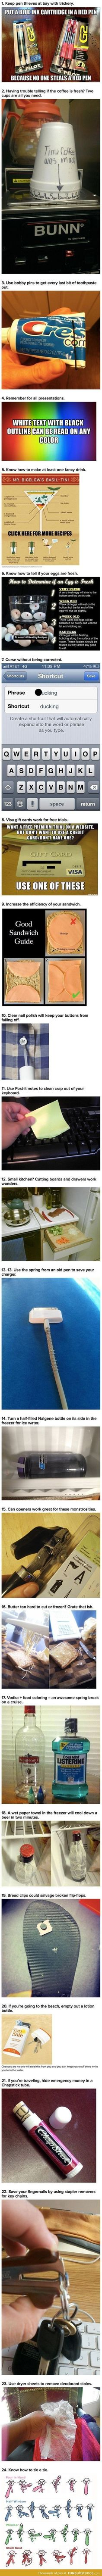 So needed for work!!!   Put the blue ink in a red pen, cause no one steals a red pen.